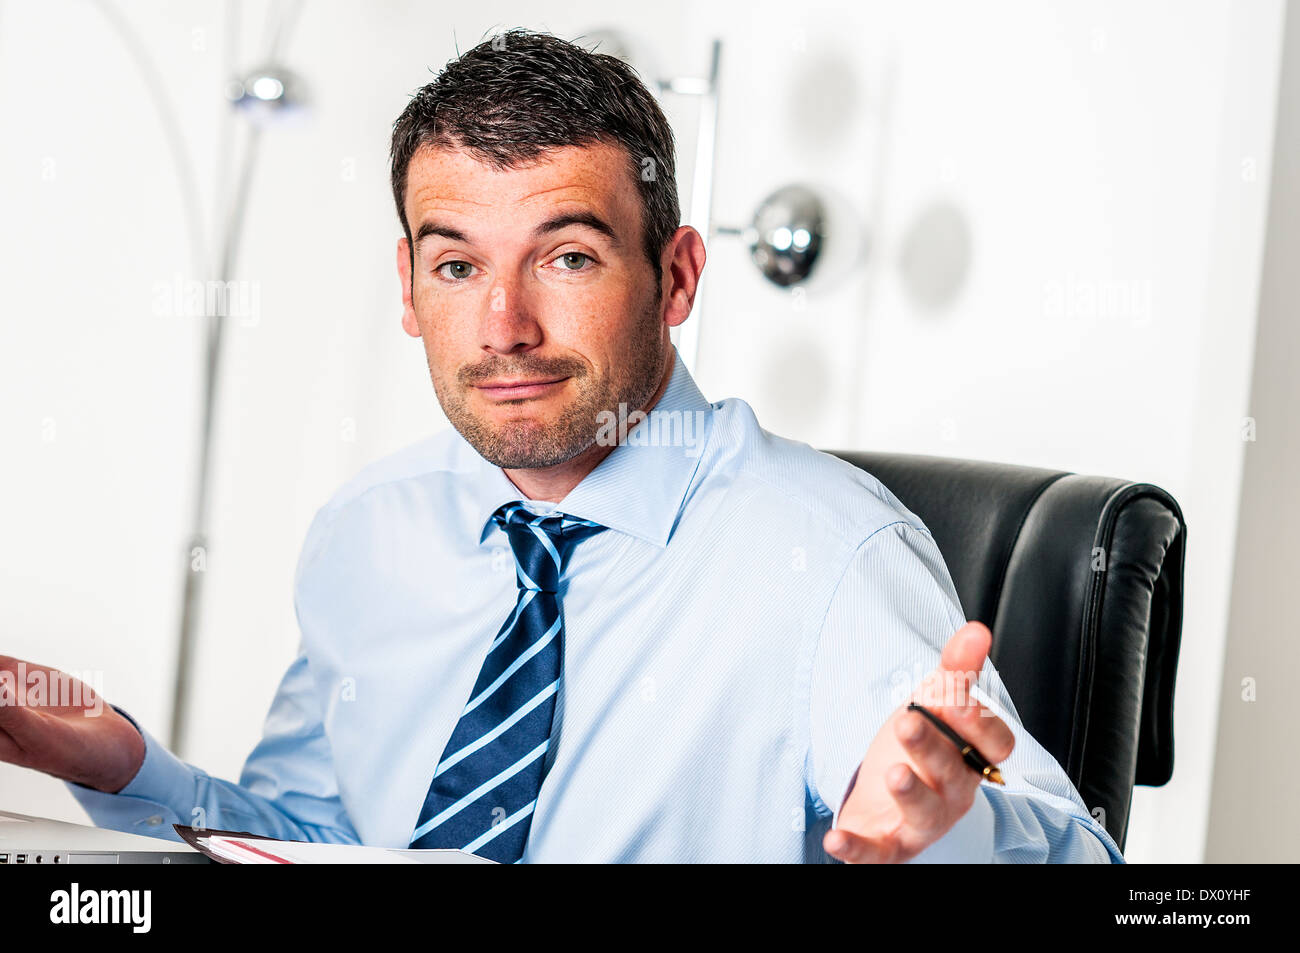 busy man hiding behind a stack of files - Stock Image